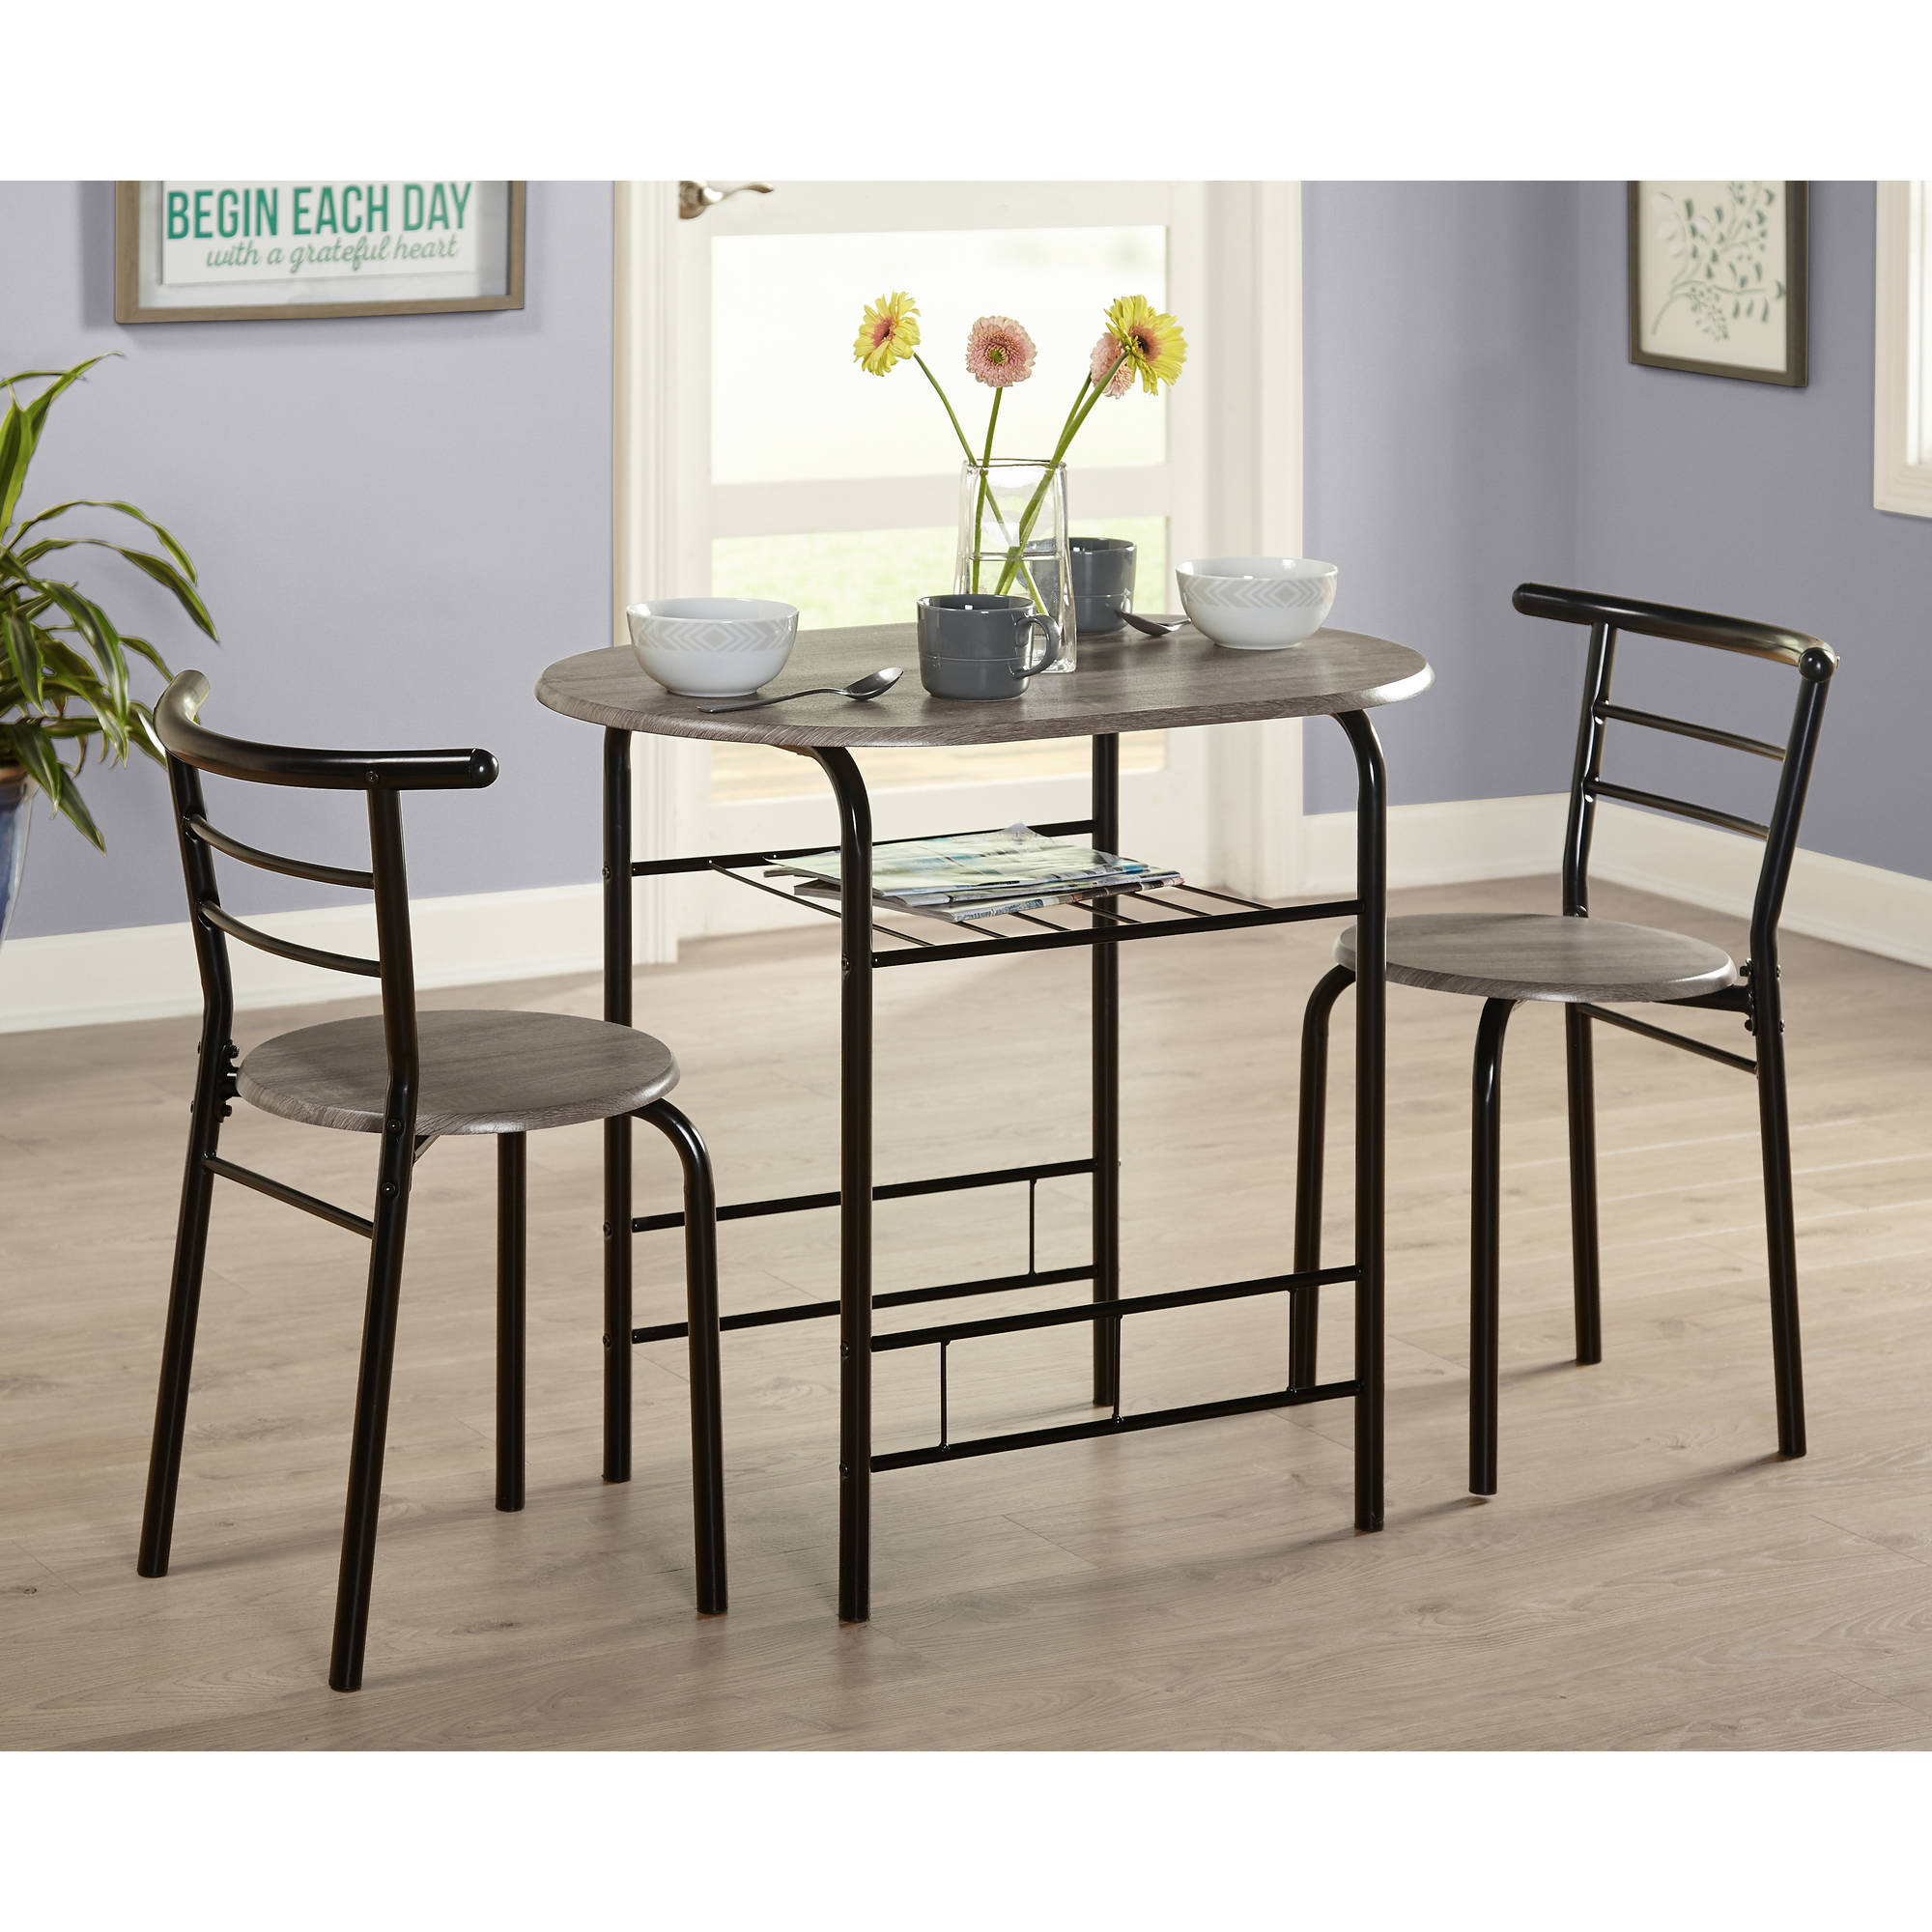 Picture 1 of 3 ...  sc 1 st  eBay & Bistro Table Set 3 Piece Dining for 2 Furniture Chair Kitchen Coffee ...